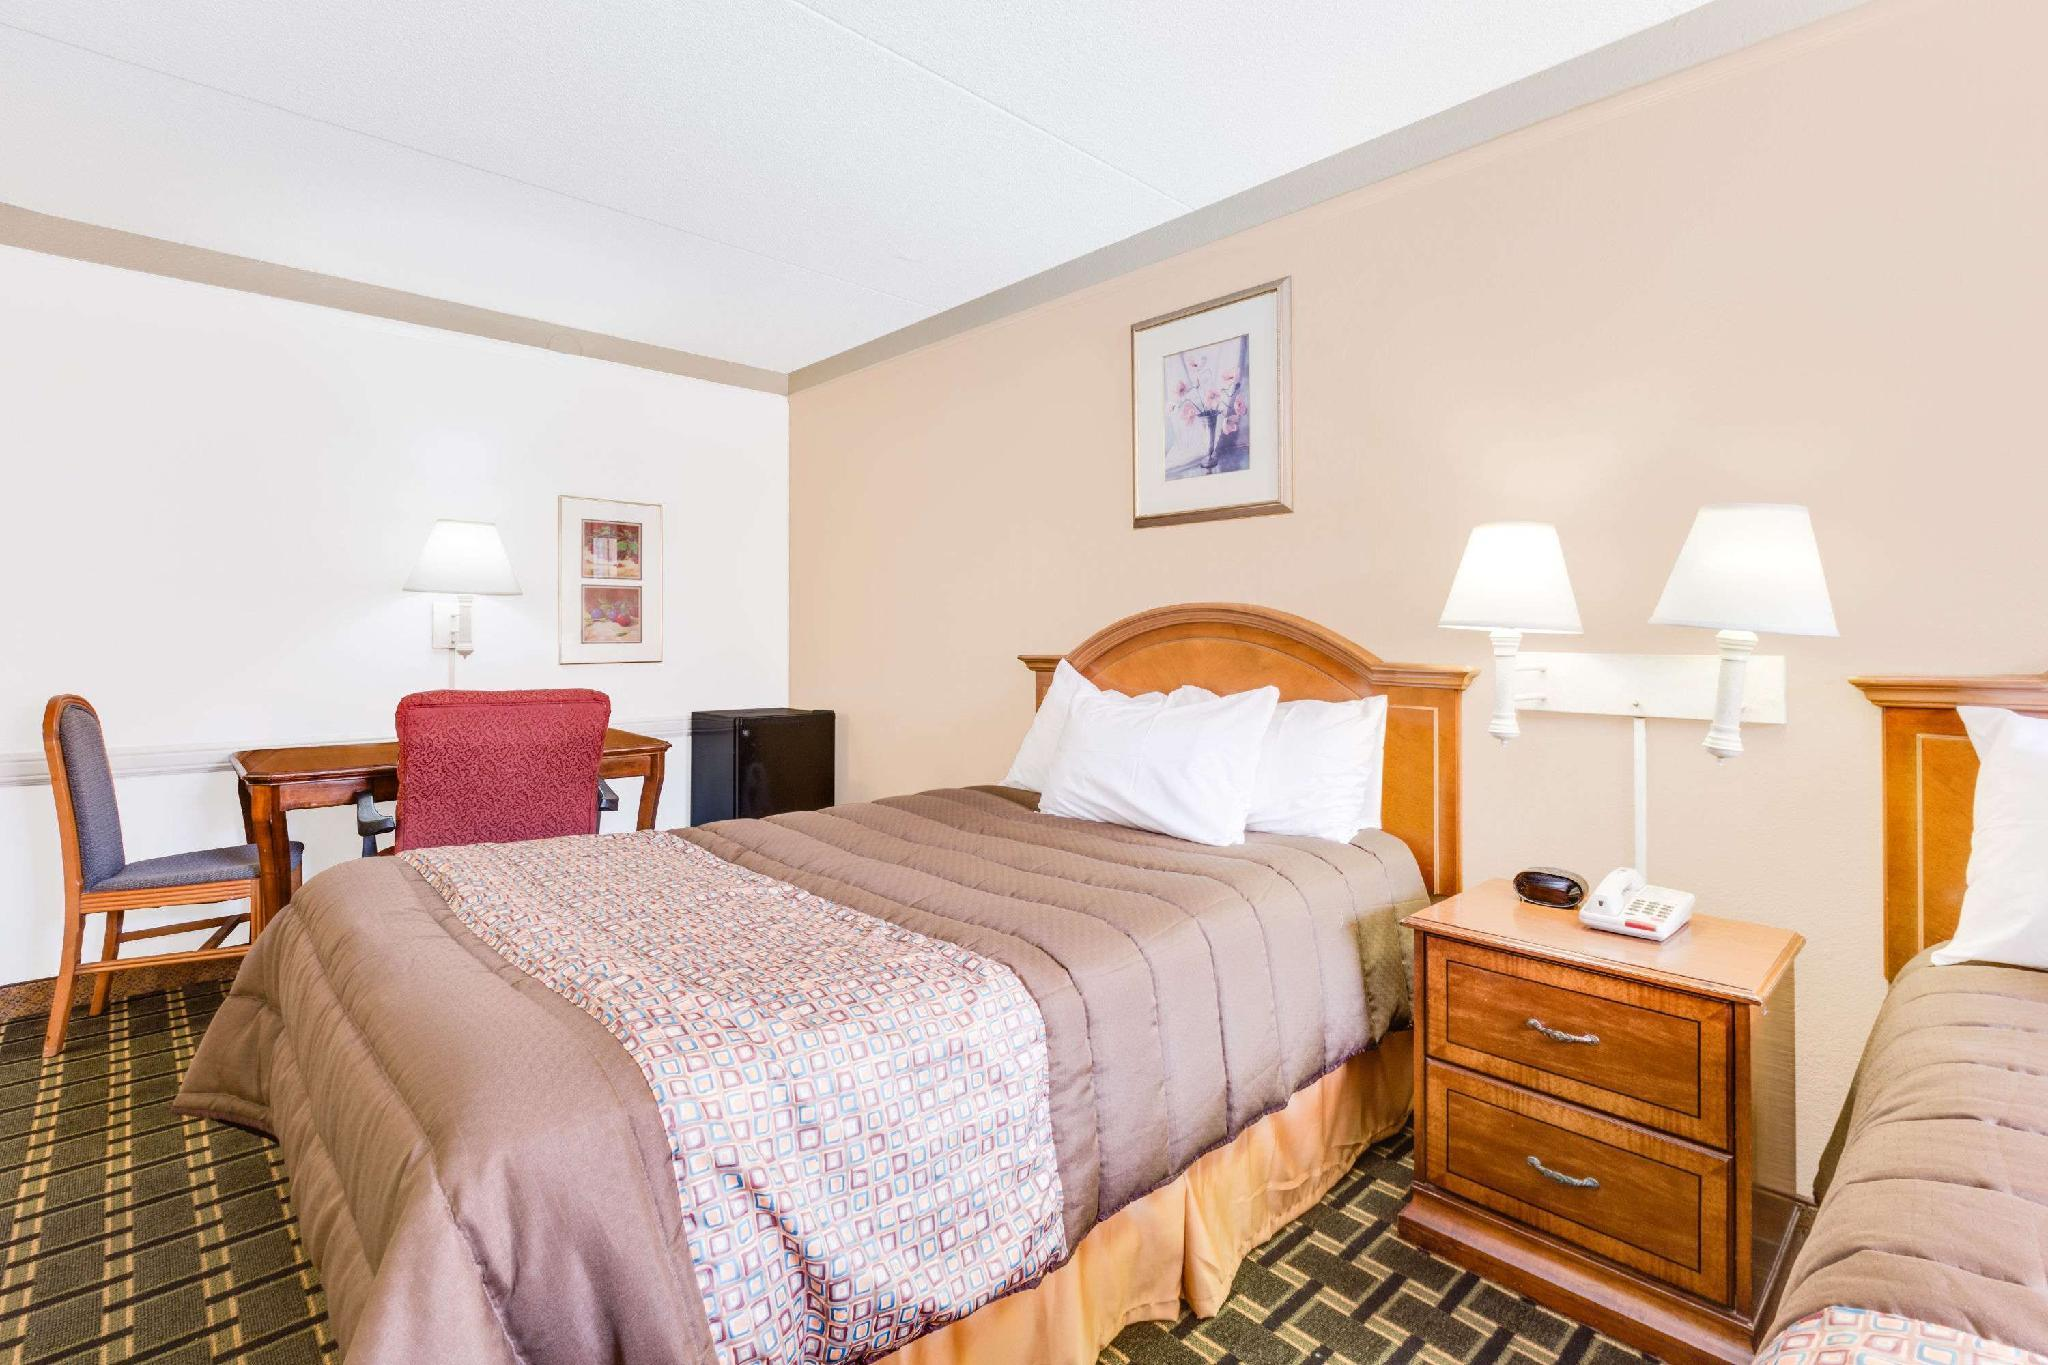 2 Double Beds, Mobility Accessible Room, Smoking